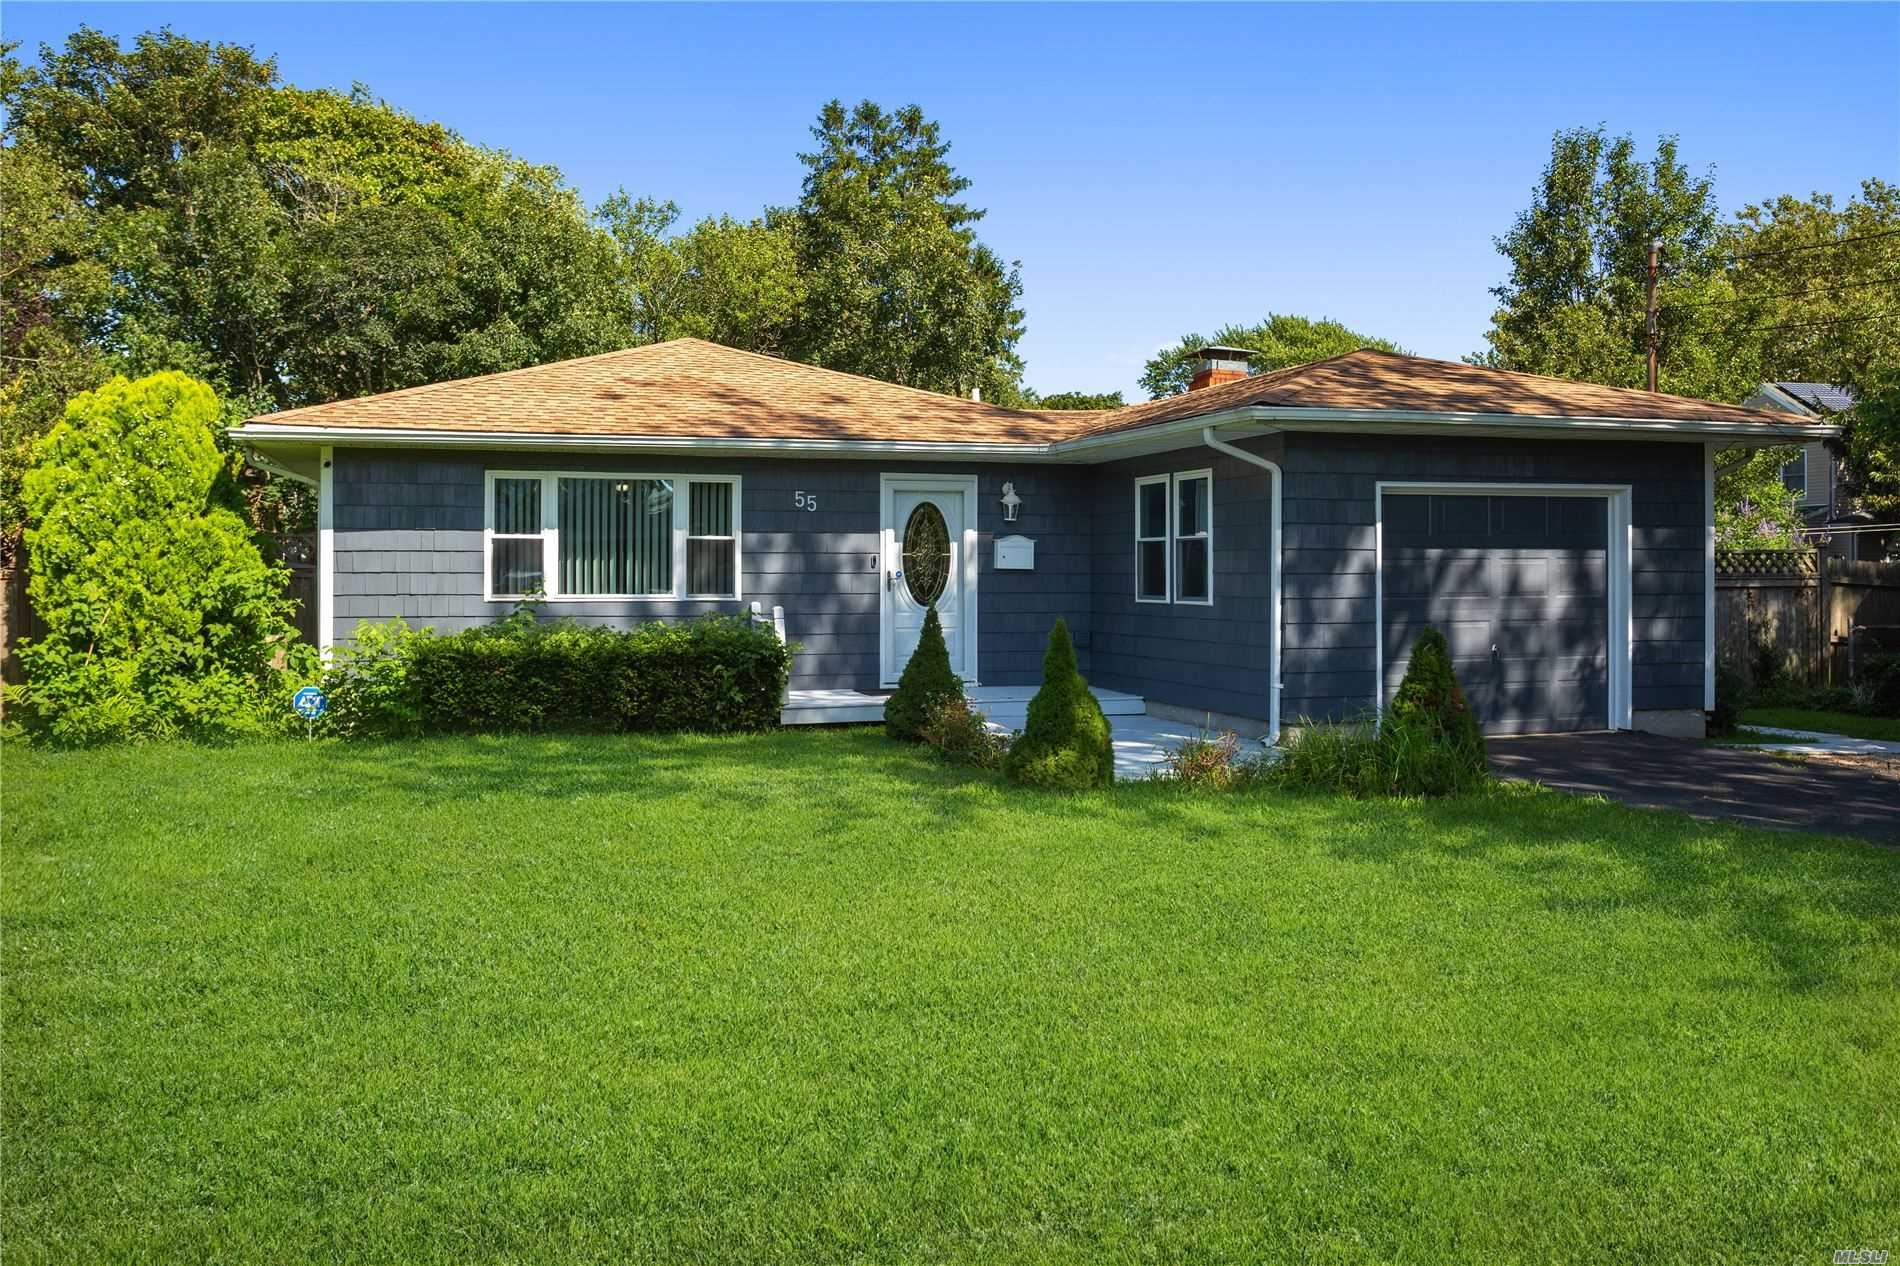 55 Lee Ave, Patchogue, NY 11772 - MLS#: 3237443